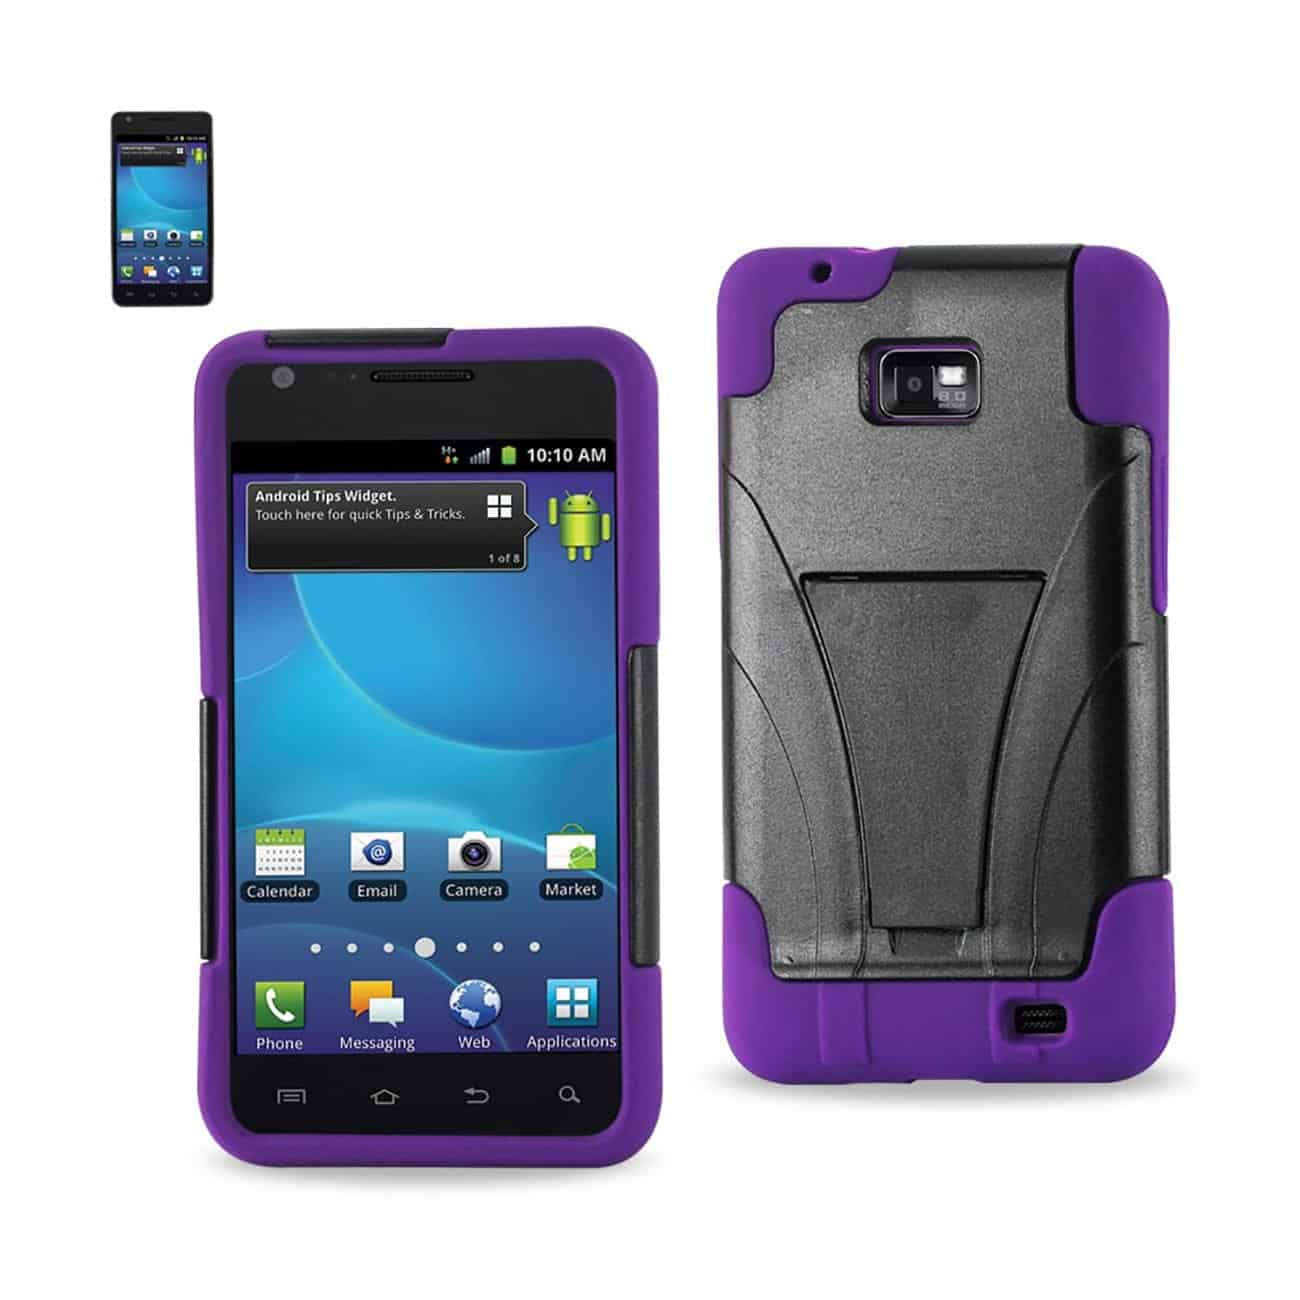 SAMSUNG GALAXY S2 HYBRID HEAVY DUTY CASE WITH KICKSTAND IN PURPLE BLACK